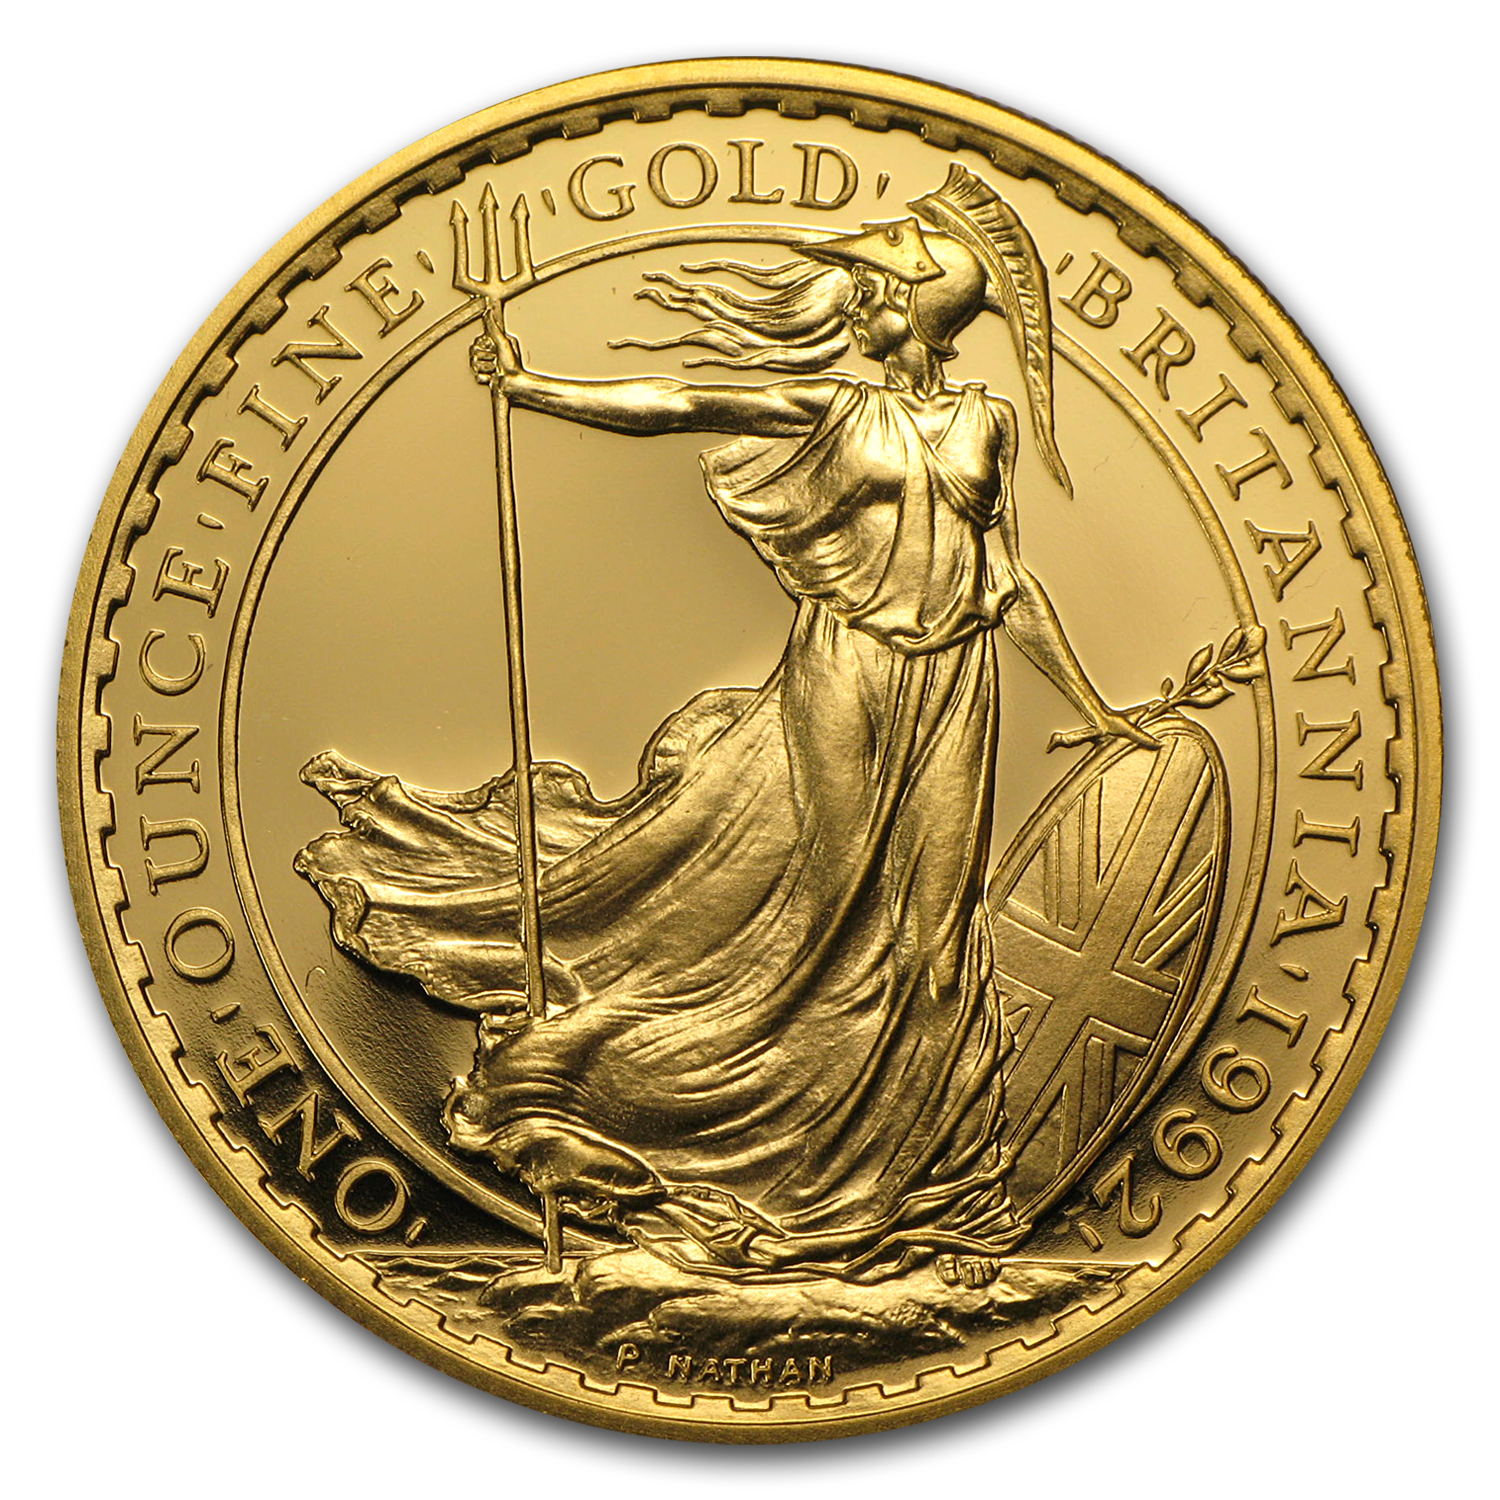 1992 Great Britain Proof Gold 1 oz Britannia